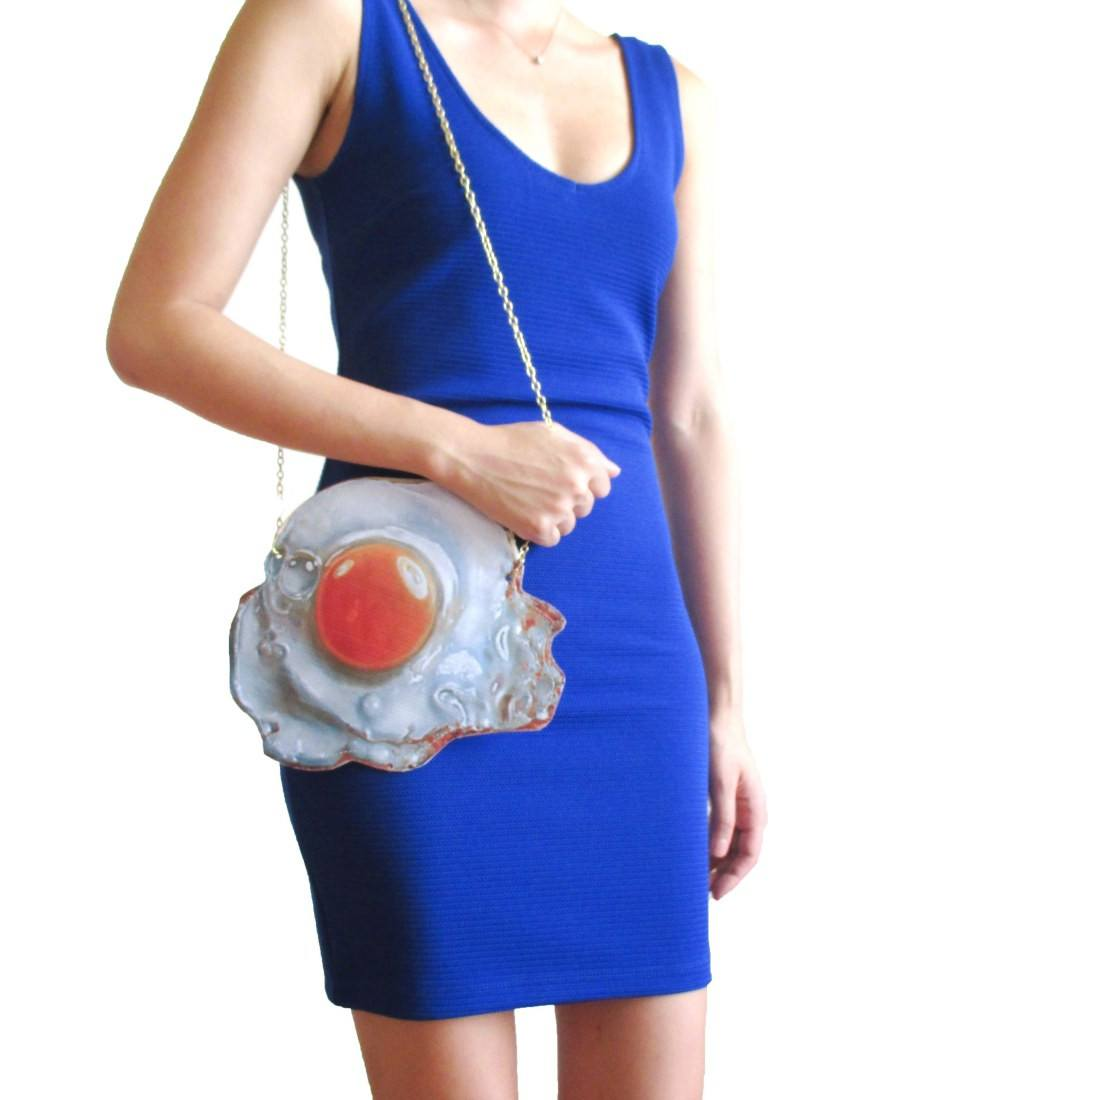 Fried Egg Shaped Food Themed Vinyl Cross Body Bag